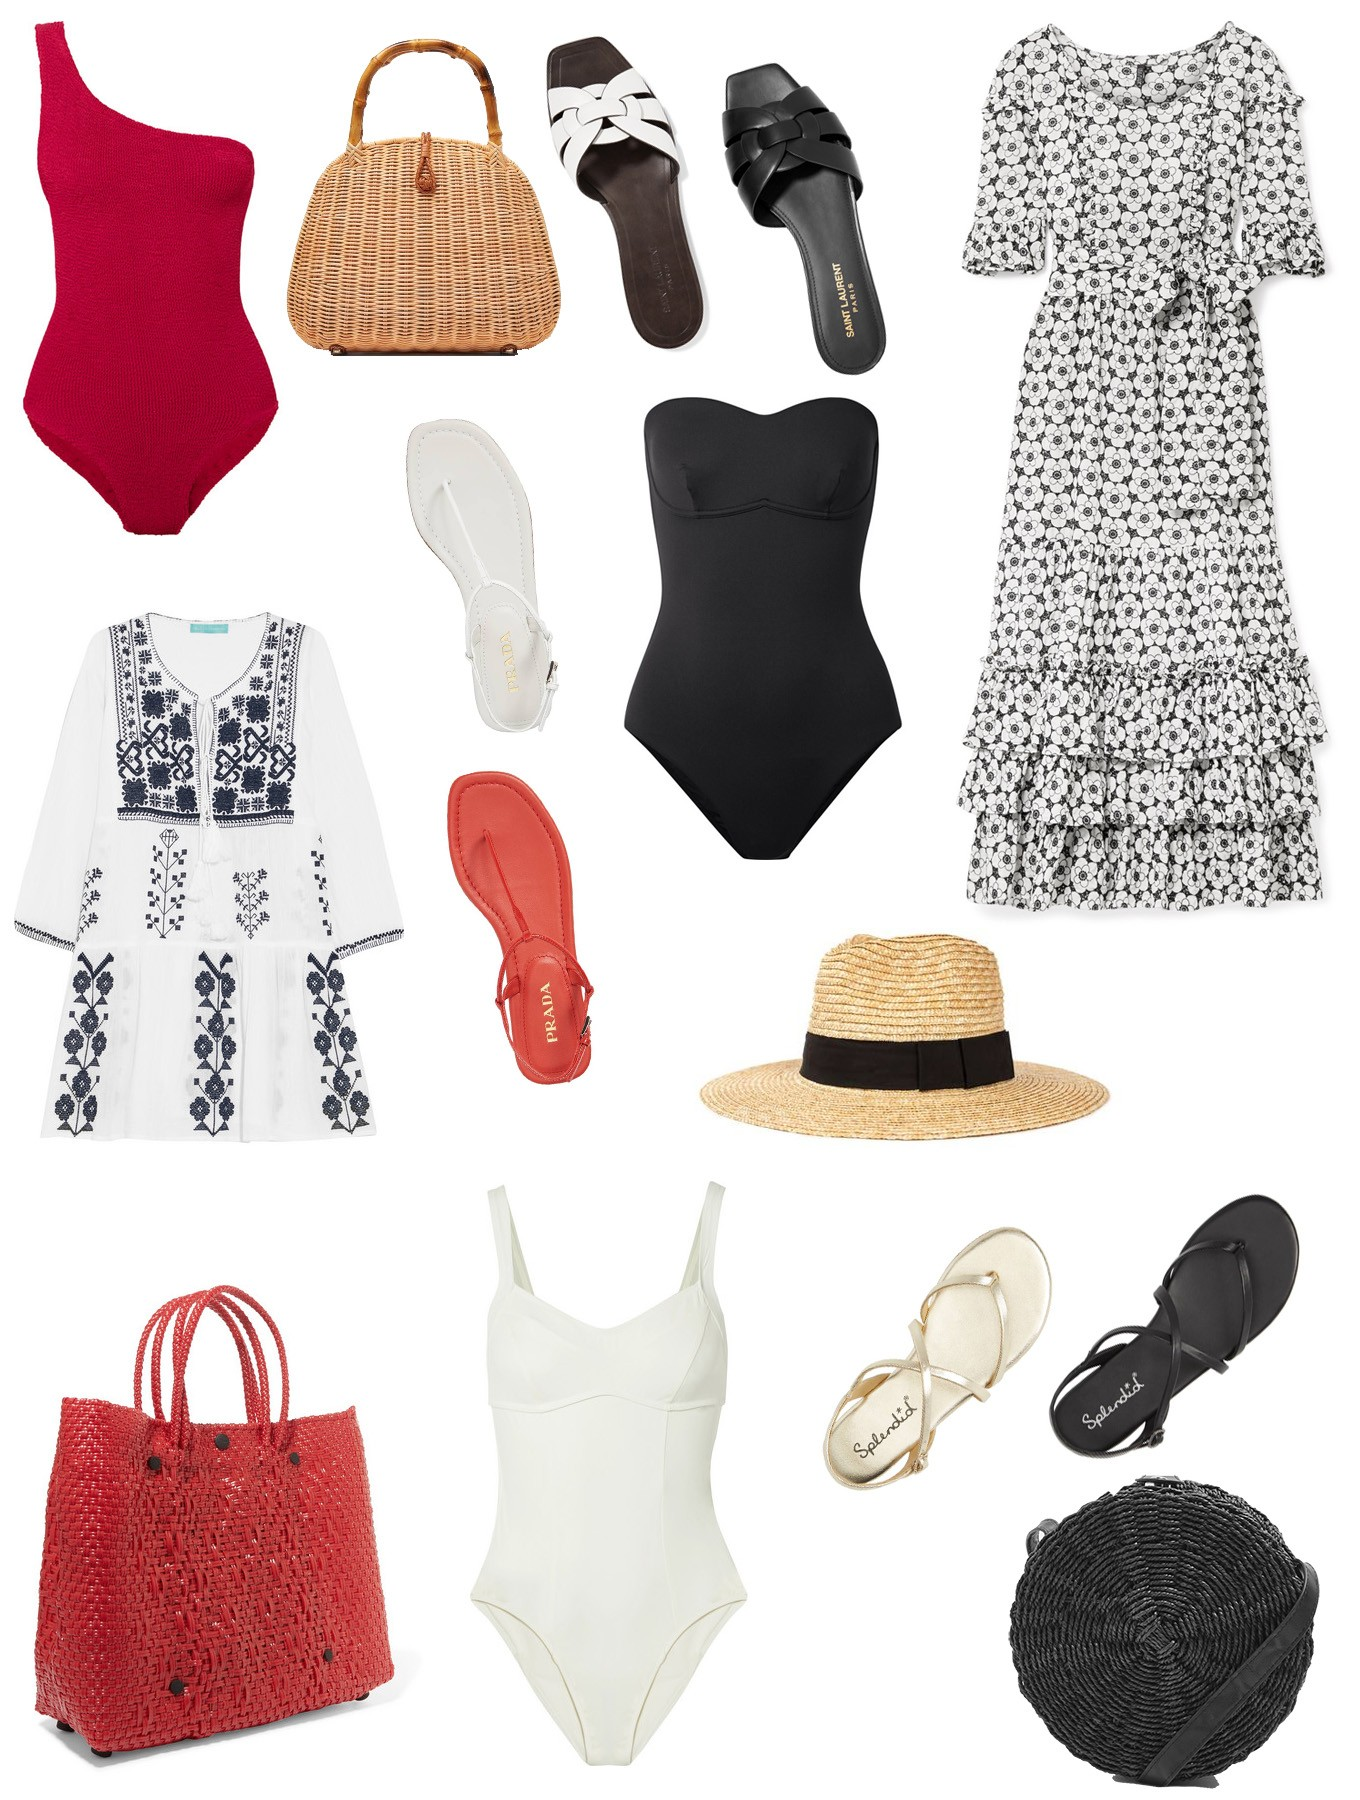 What is your Bathing Suit Color? | Ridgely's Radar